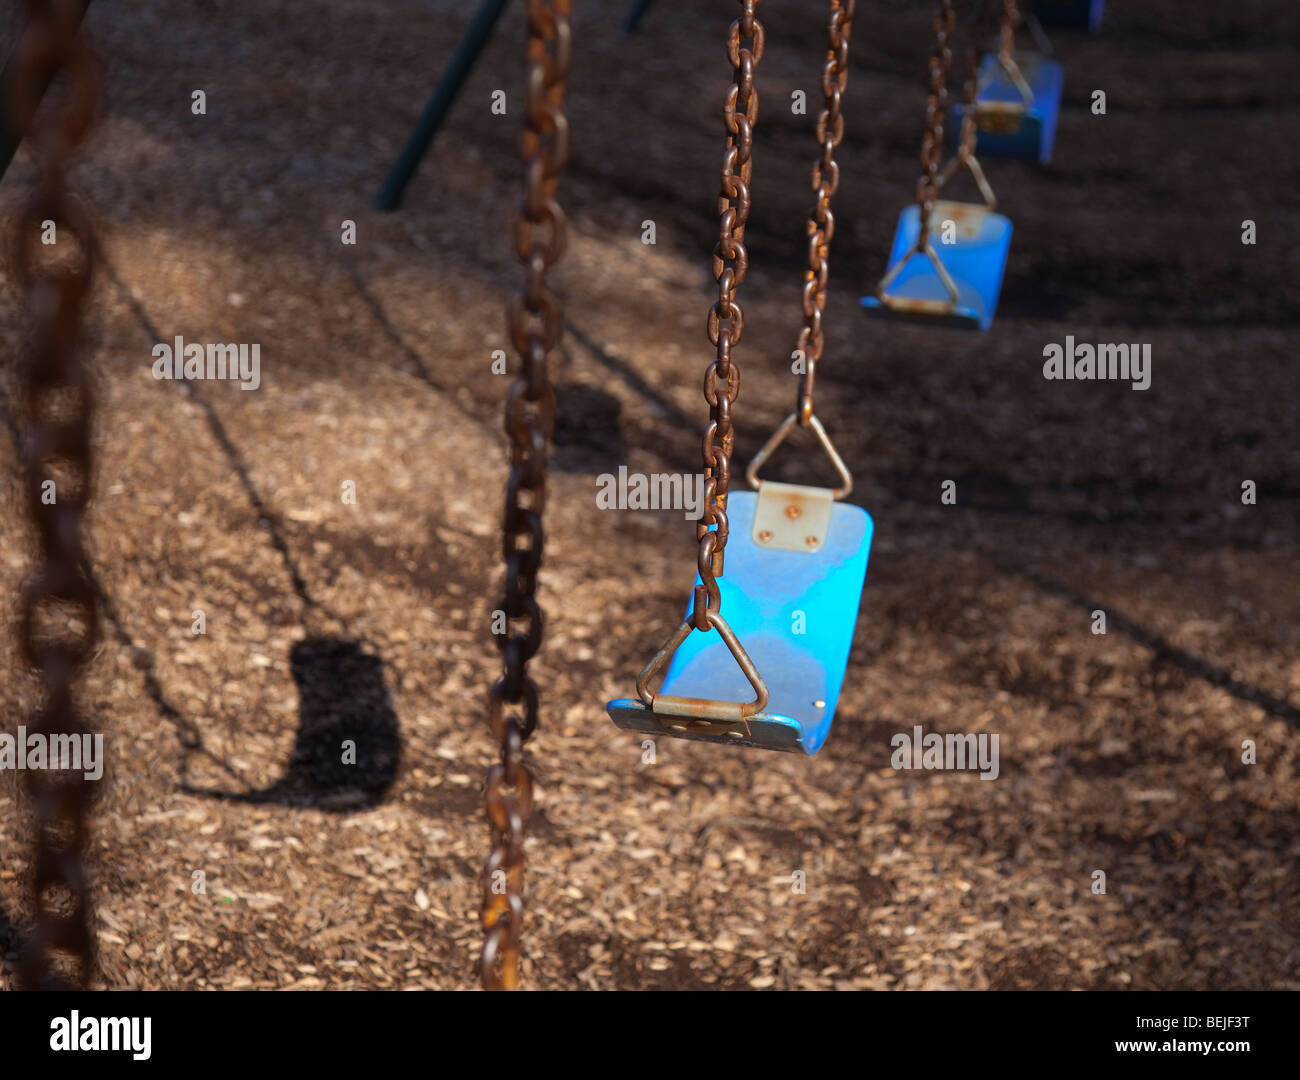 Swings in a row - Stock Image